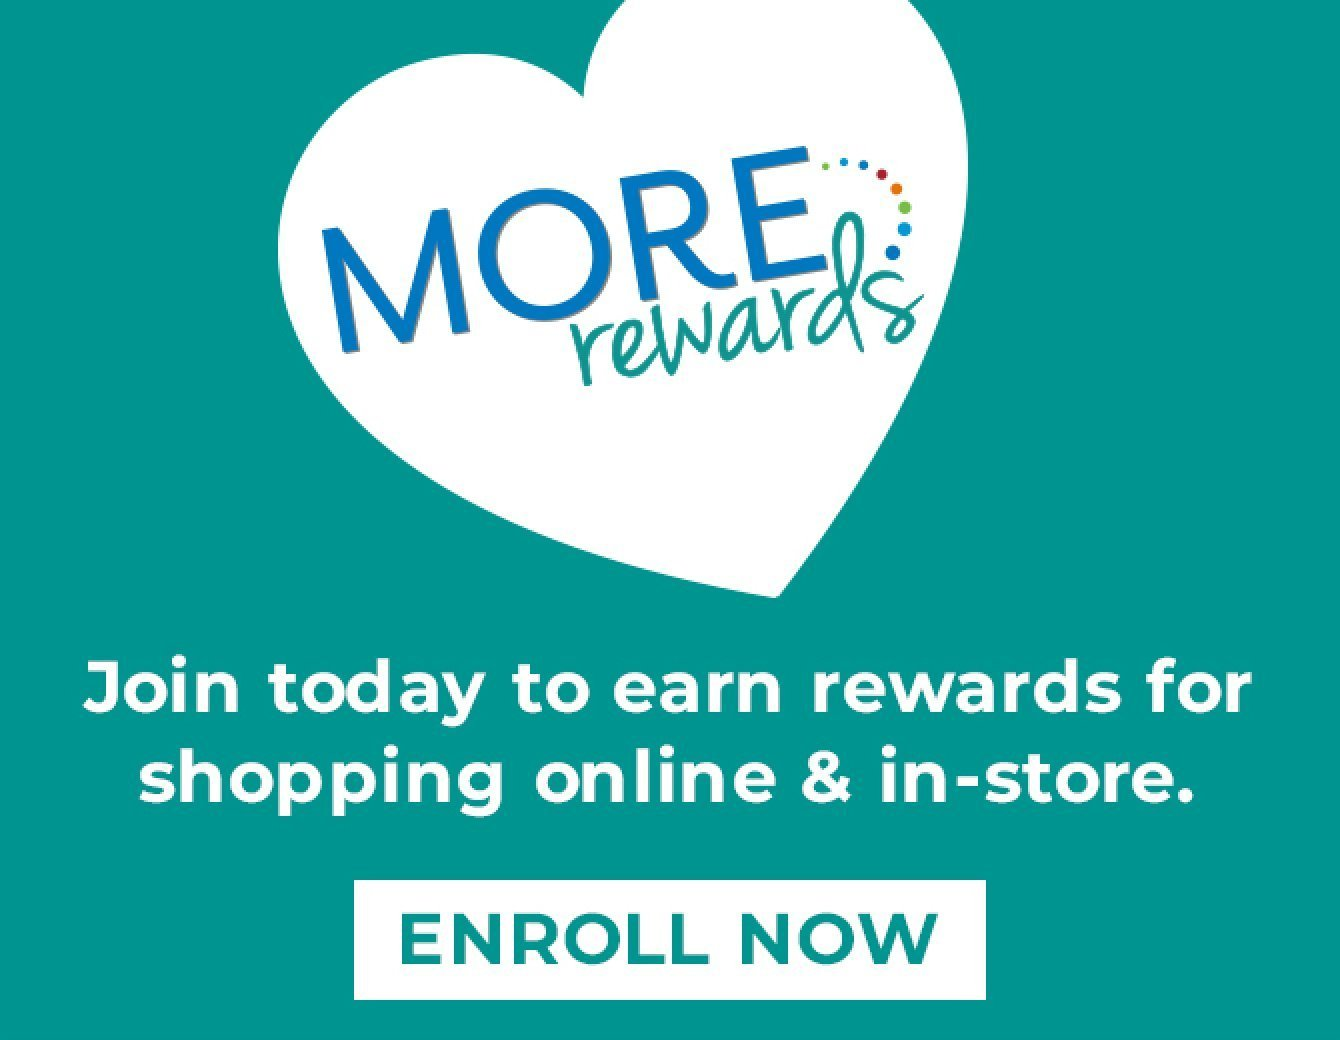 MORE rewards - Sign up today! - Enroll Now